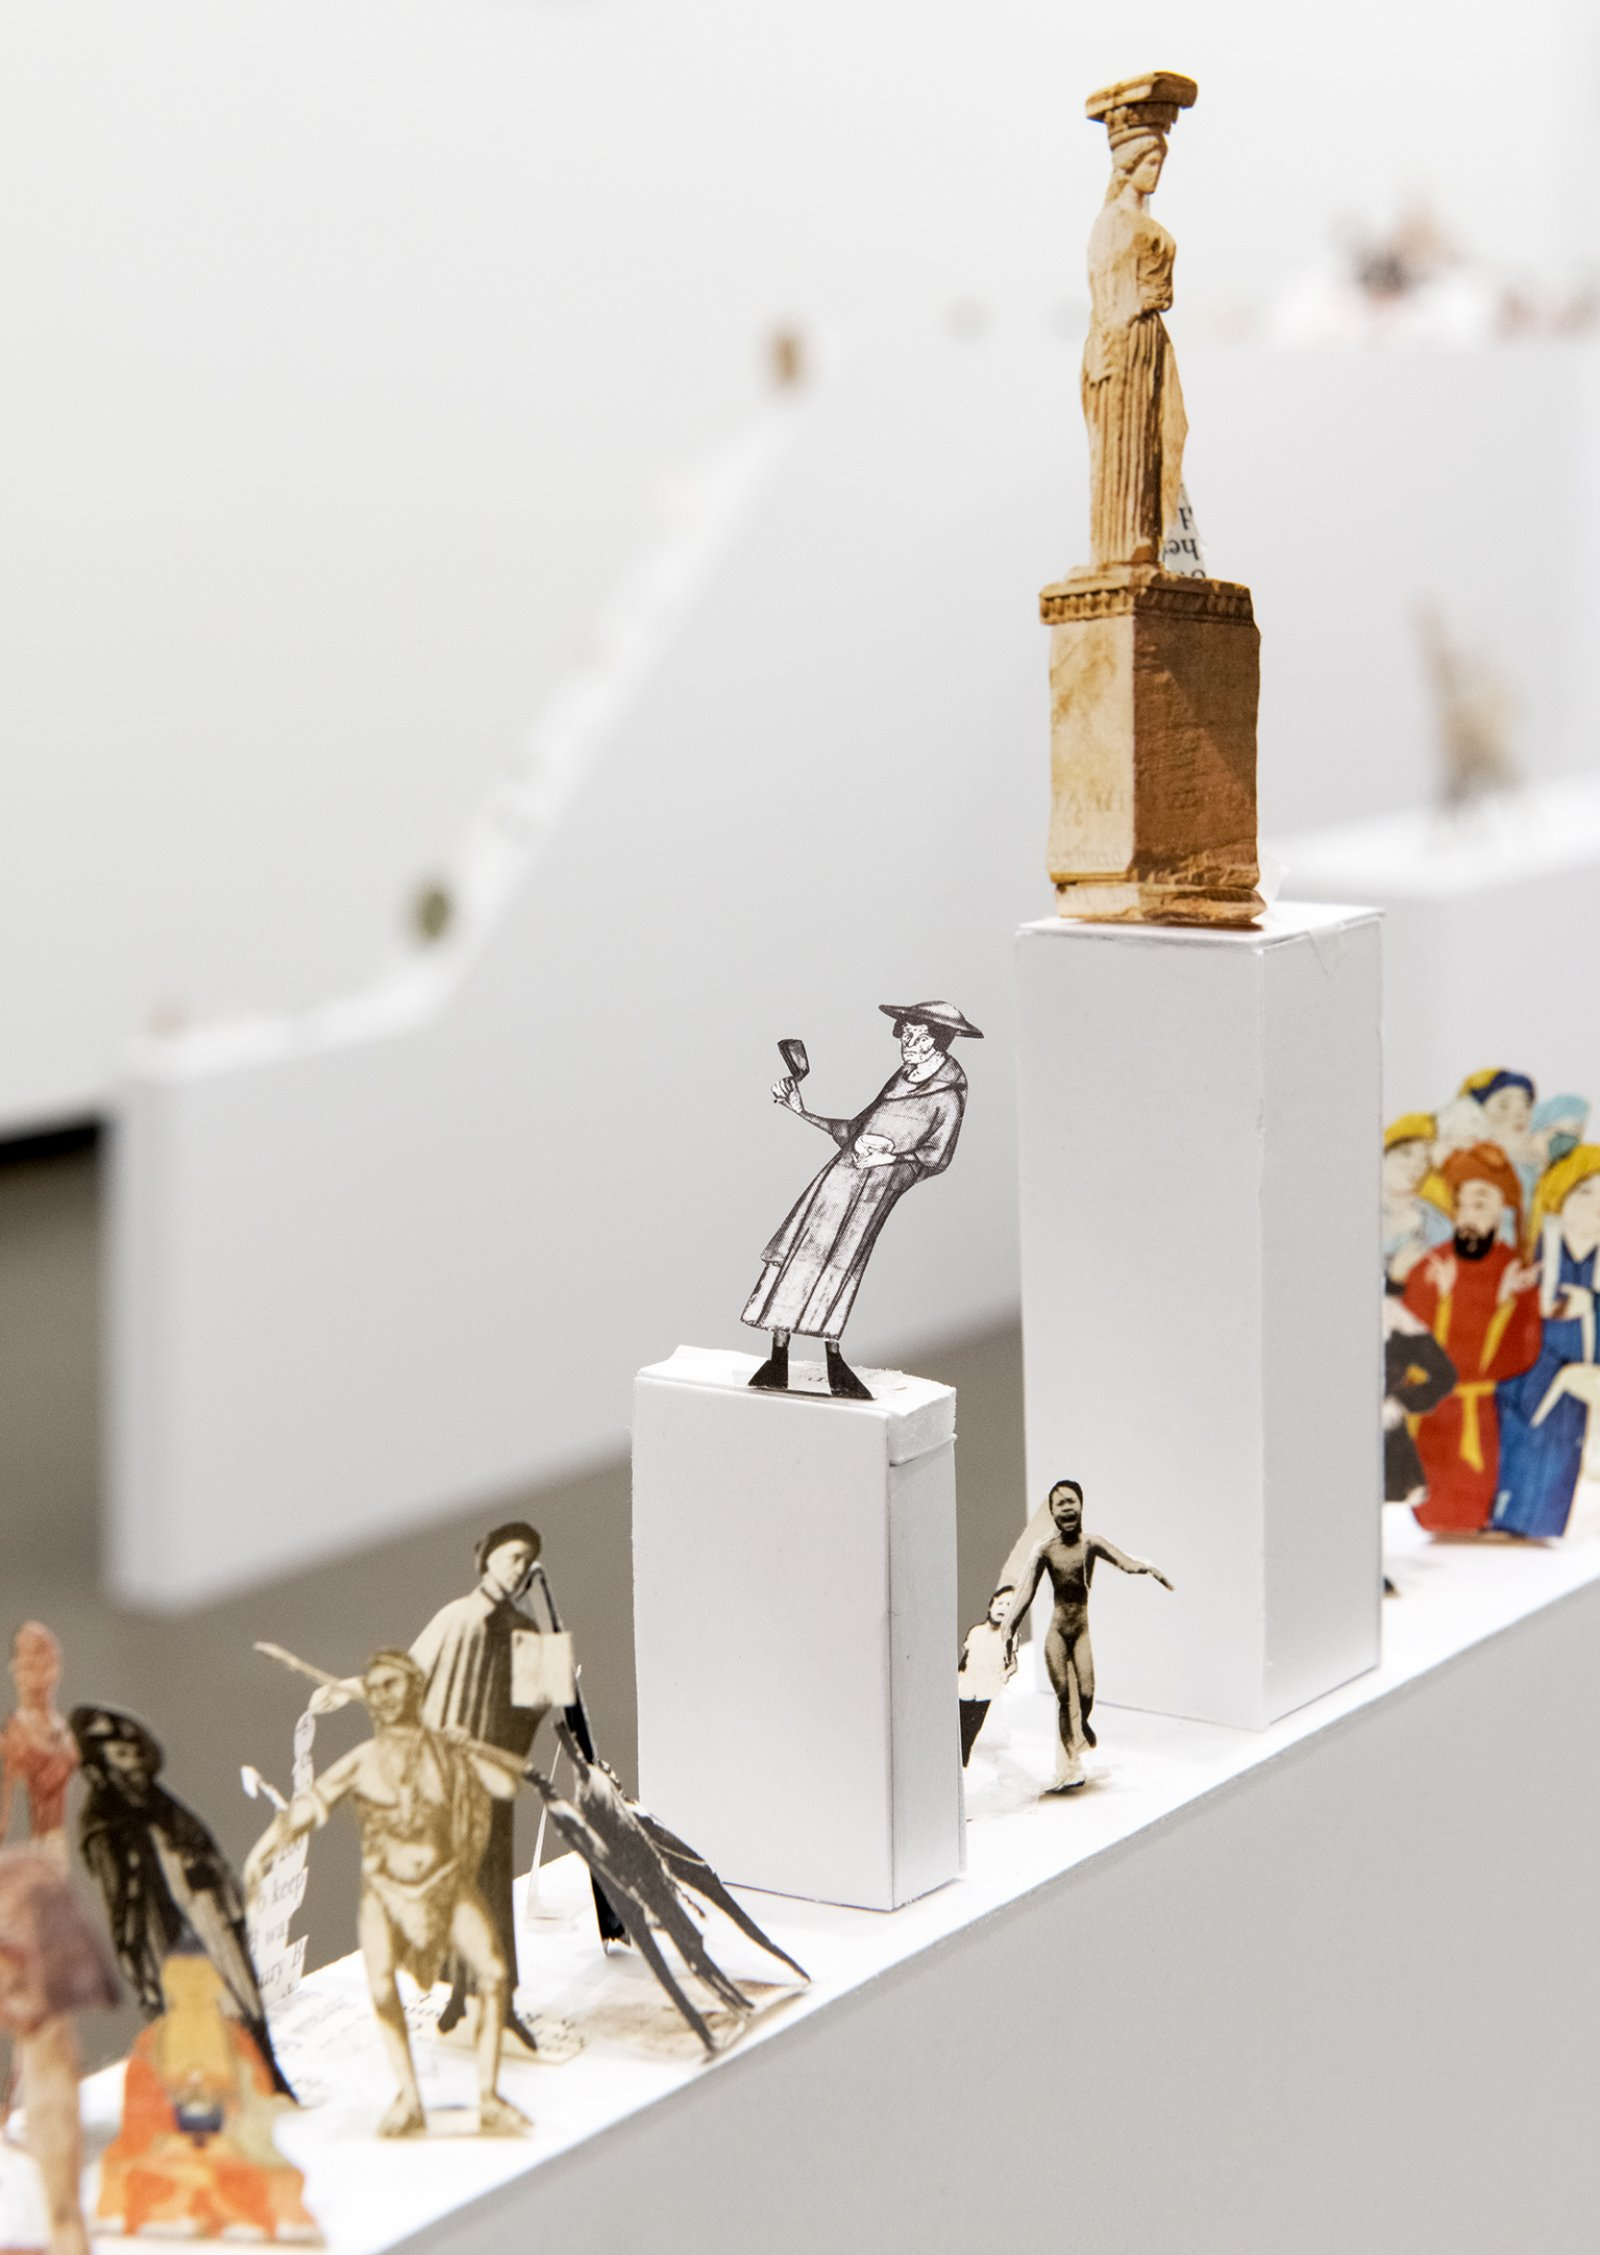 Geoffrey Farmer, The Last Two Million Years, 2007, foamcore plinths, perspex frames and cutouts from selected pages of the history book The Last Two Million Years, dimensions variable. Installation view, How Do I Fit This Ghost in My Mouth?, Vancouver Art Gallery, 2015